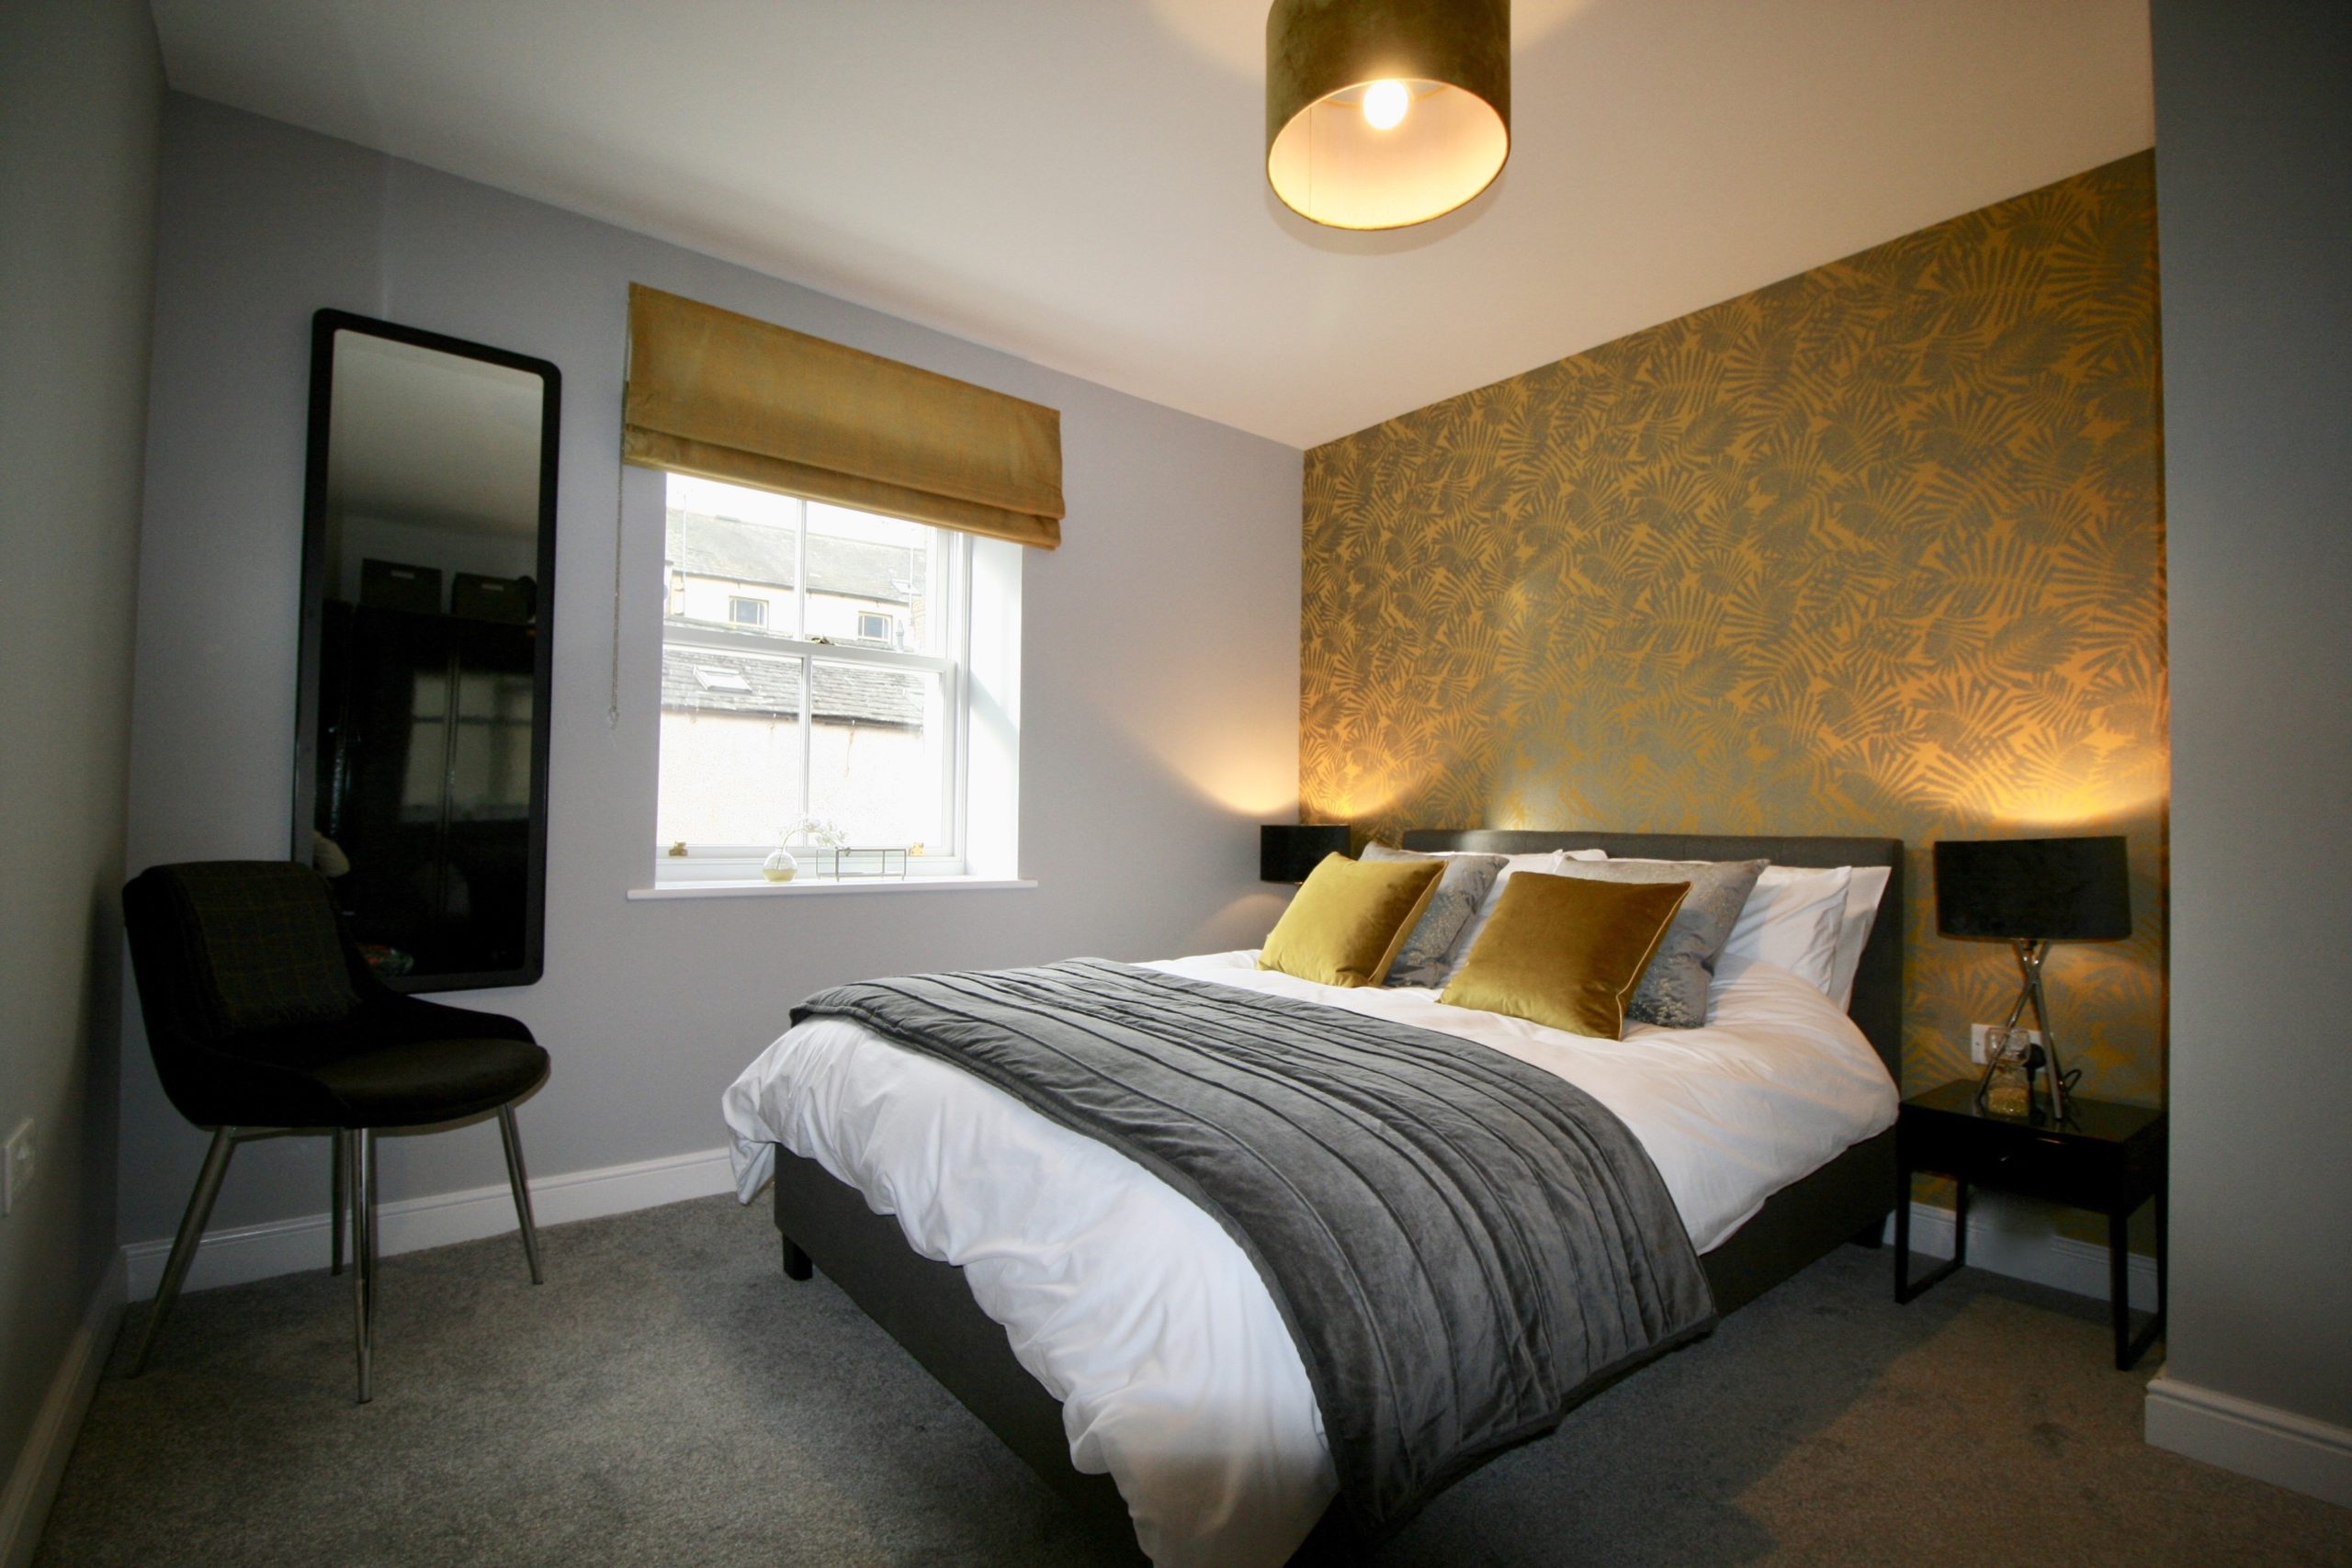 Master bedroom decorated in charcoal grey, mustard and black in show home designed by Amelia Wilson